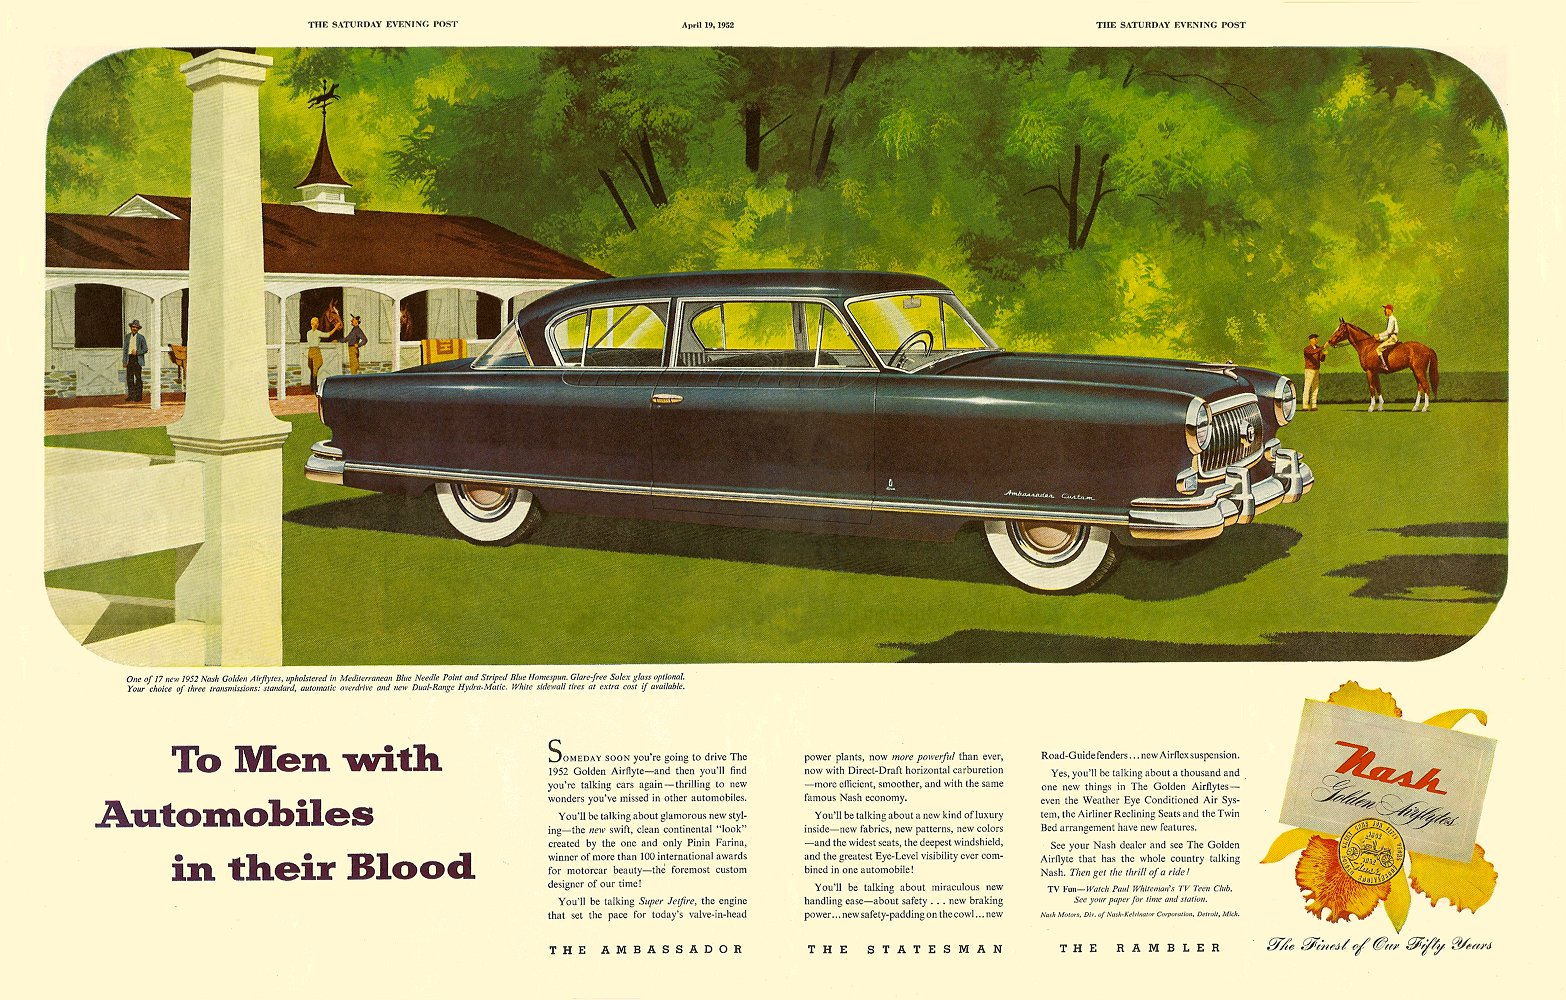 To Men with Automobiles in their Blood The Saturday Evening Post April 19, 1952 Pages 110 & 111, 10.5″x13.5″